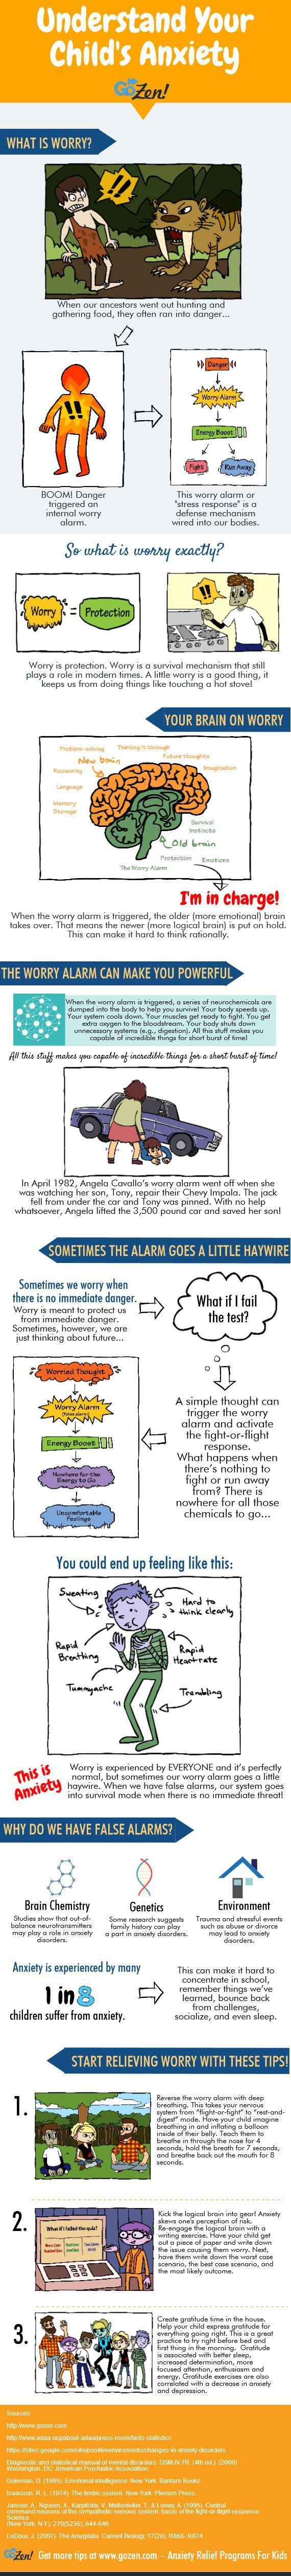 """If you've never suffered from anxiety, it can be challenging to understand what a child is truly experiencing. In fact, excessive worrying may seem like a normal part of growing up and something kids just have to """"deal"""" with. This infographic breaks down the very real and often debilitating feeling of anxiety. Recognizing how and why the brain and body transform in moments of anxiety is a first step in helping alleviate the condition."""